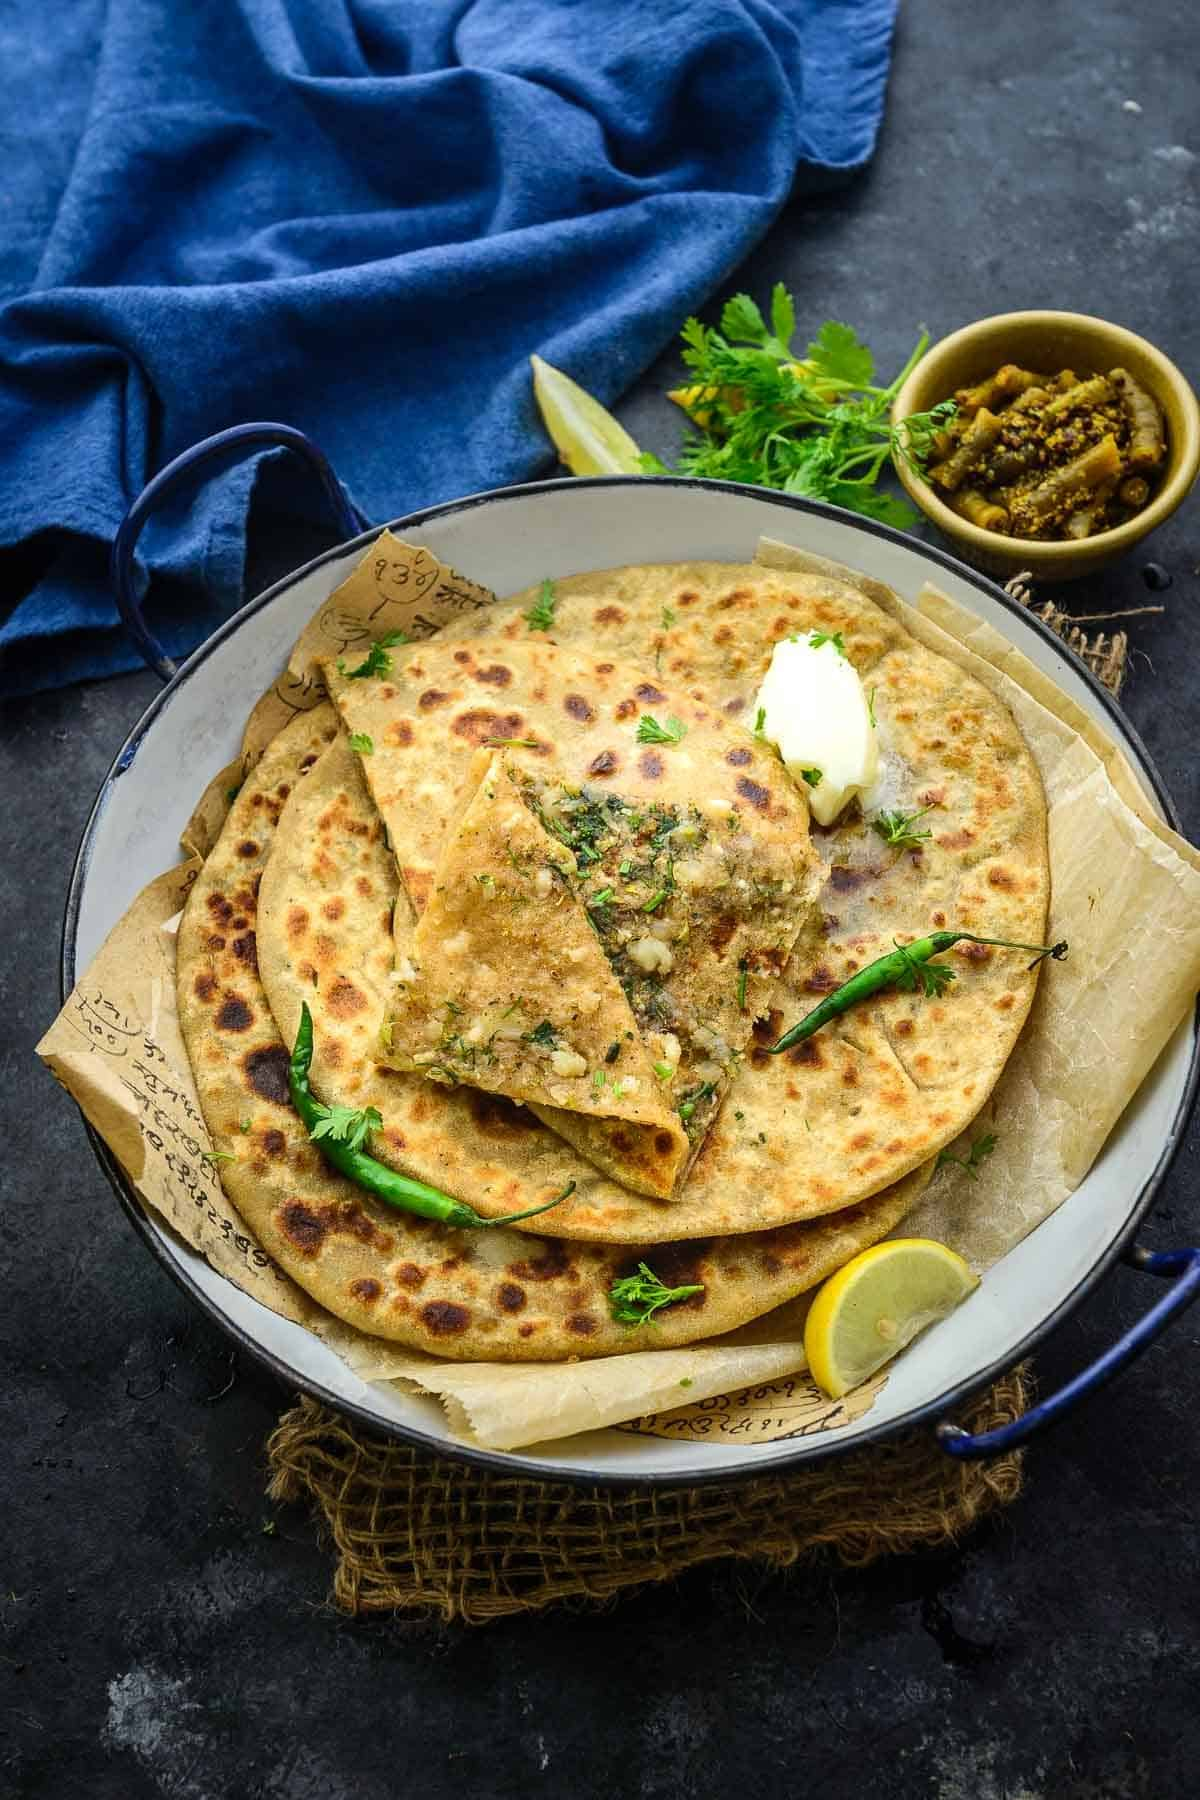 Broccoli Paratha served on a plate.